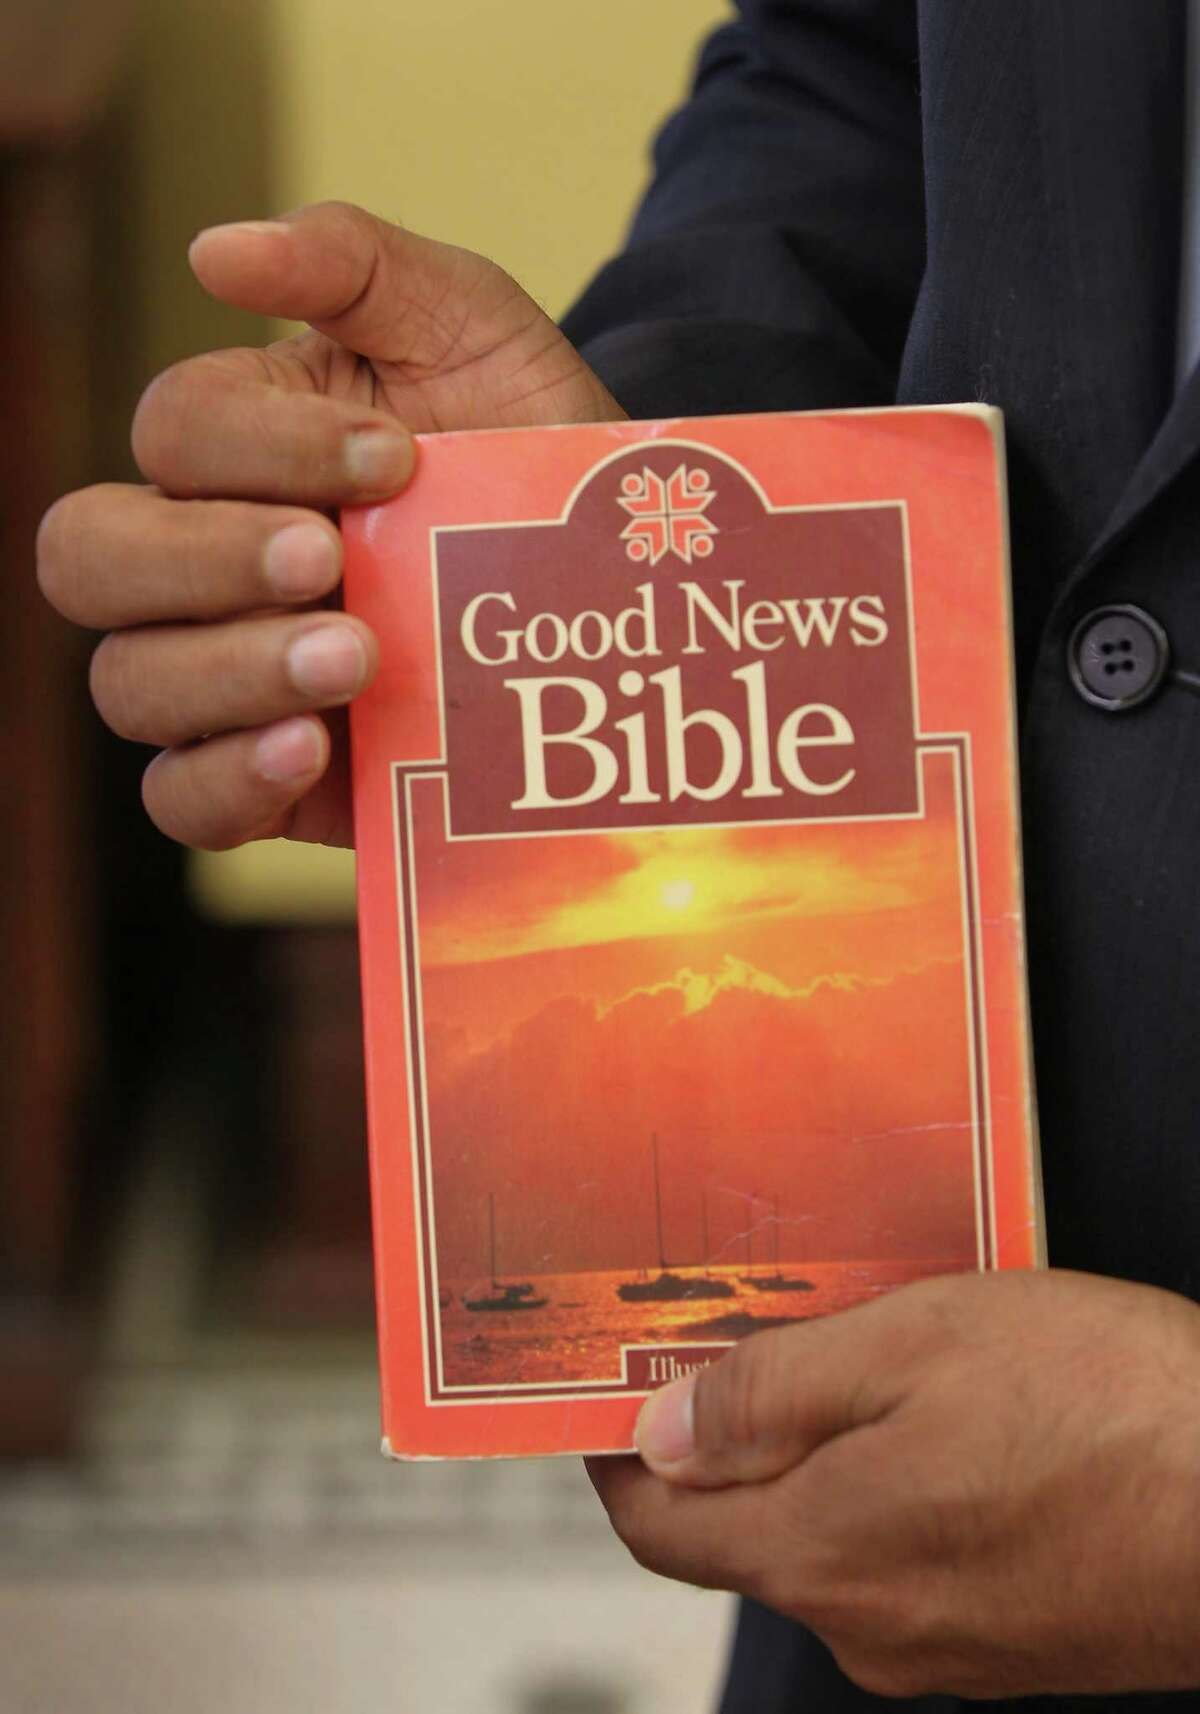 Fort Bend's newly elected County Judge, K.P. George, unpacked a Bible in his office Friday, Dec. 28, 2018, in Richmond. George explained that he carried the book with him since he immigrated from South India over 25 years ago.